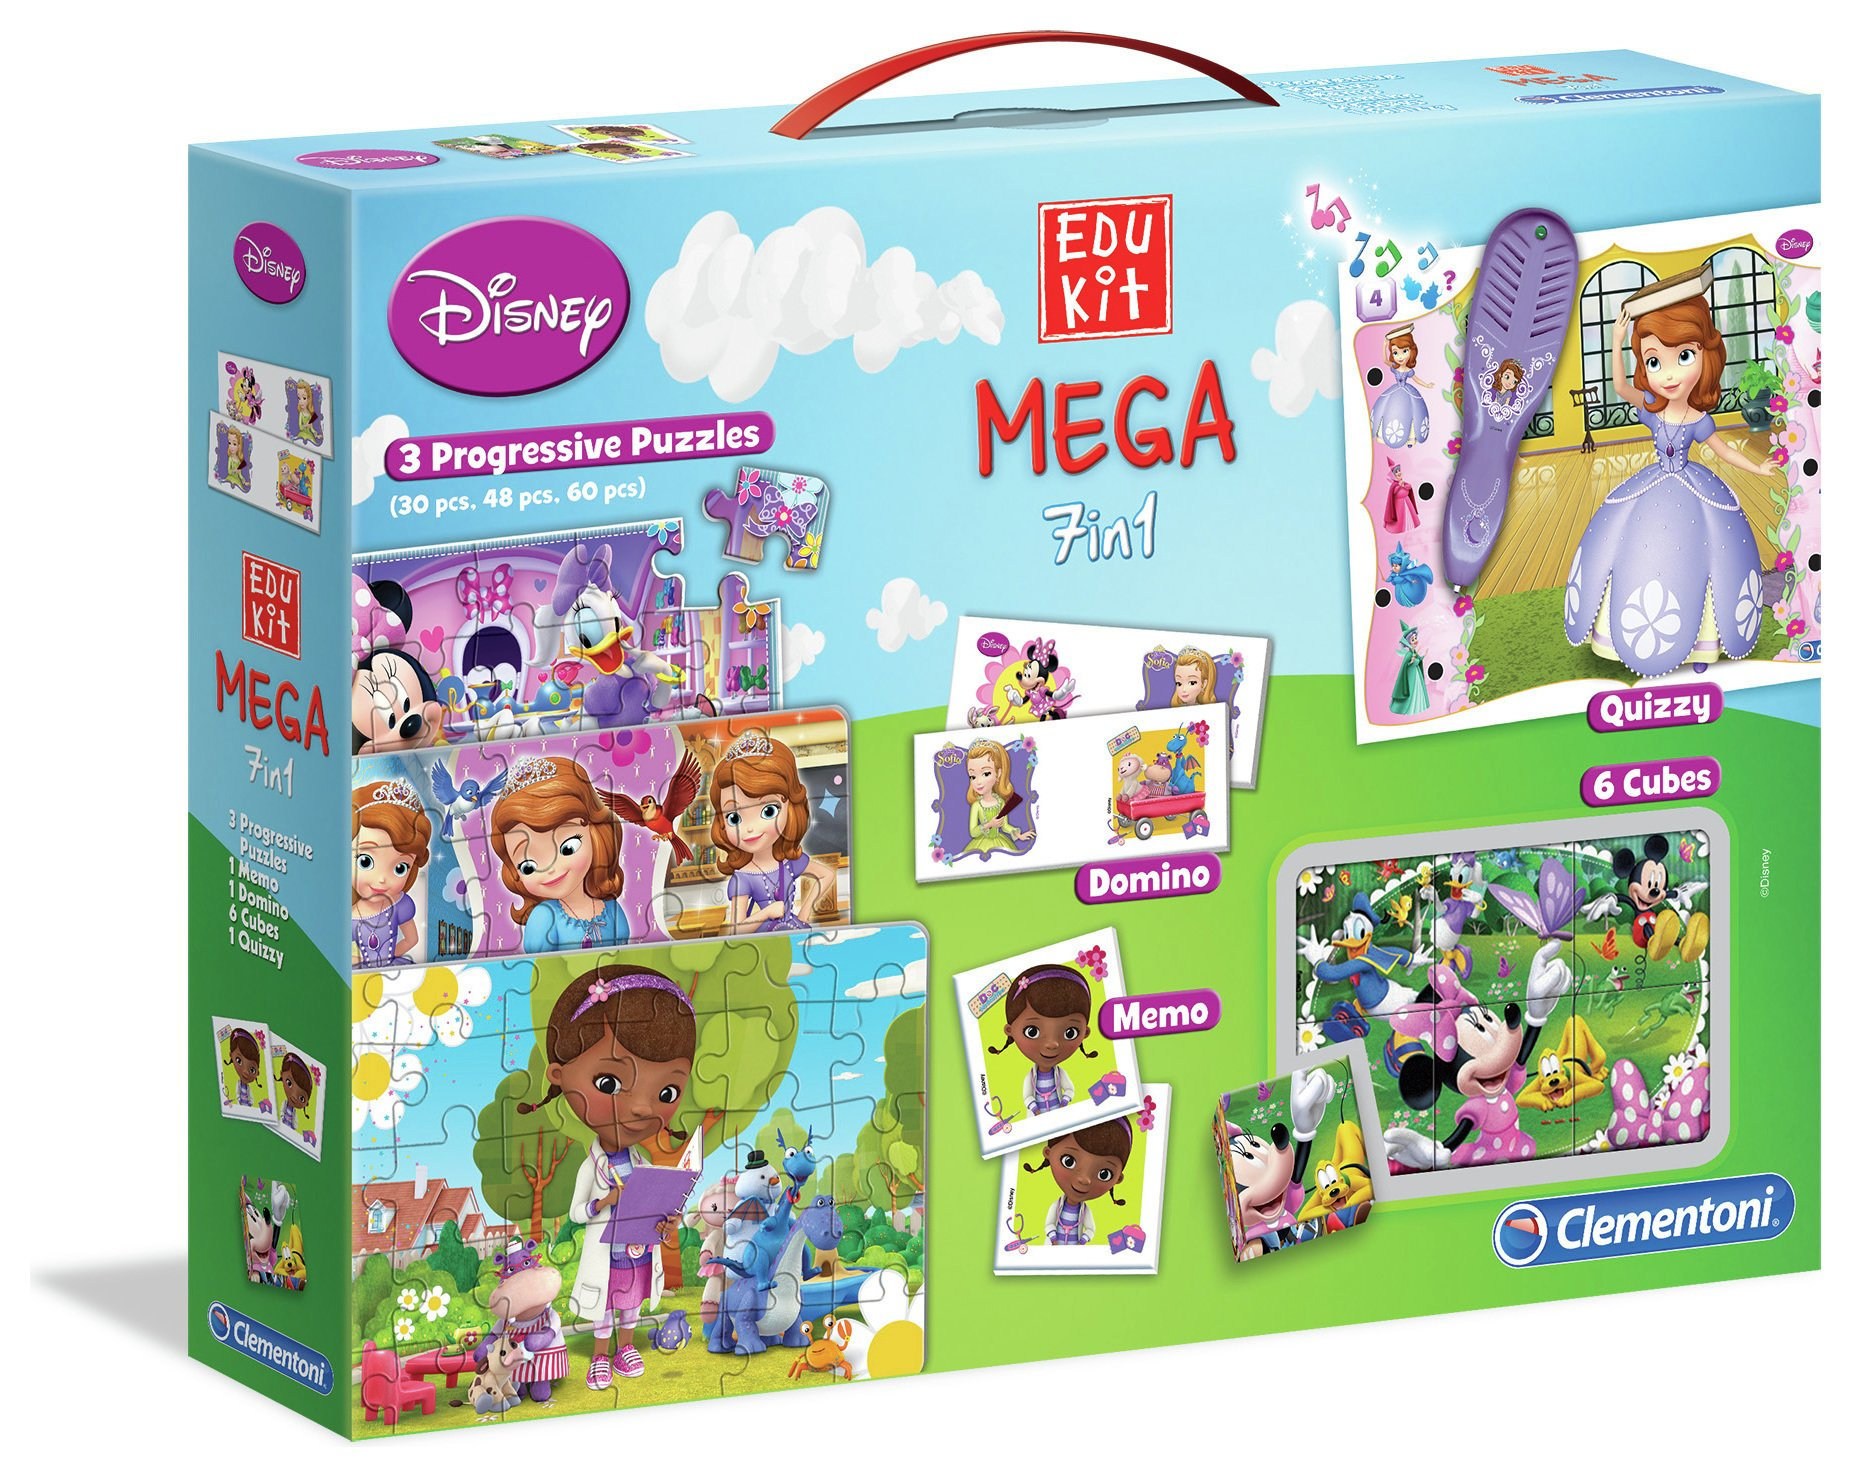 Image of Clementoni Disney - Junior 7 in 1 Mega Set.